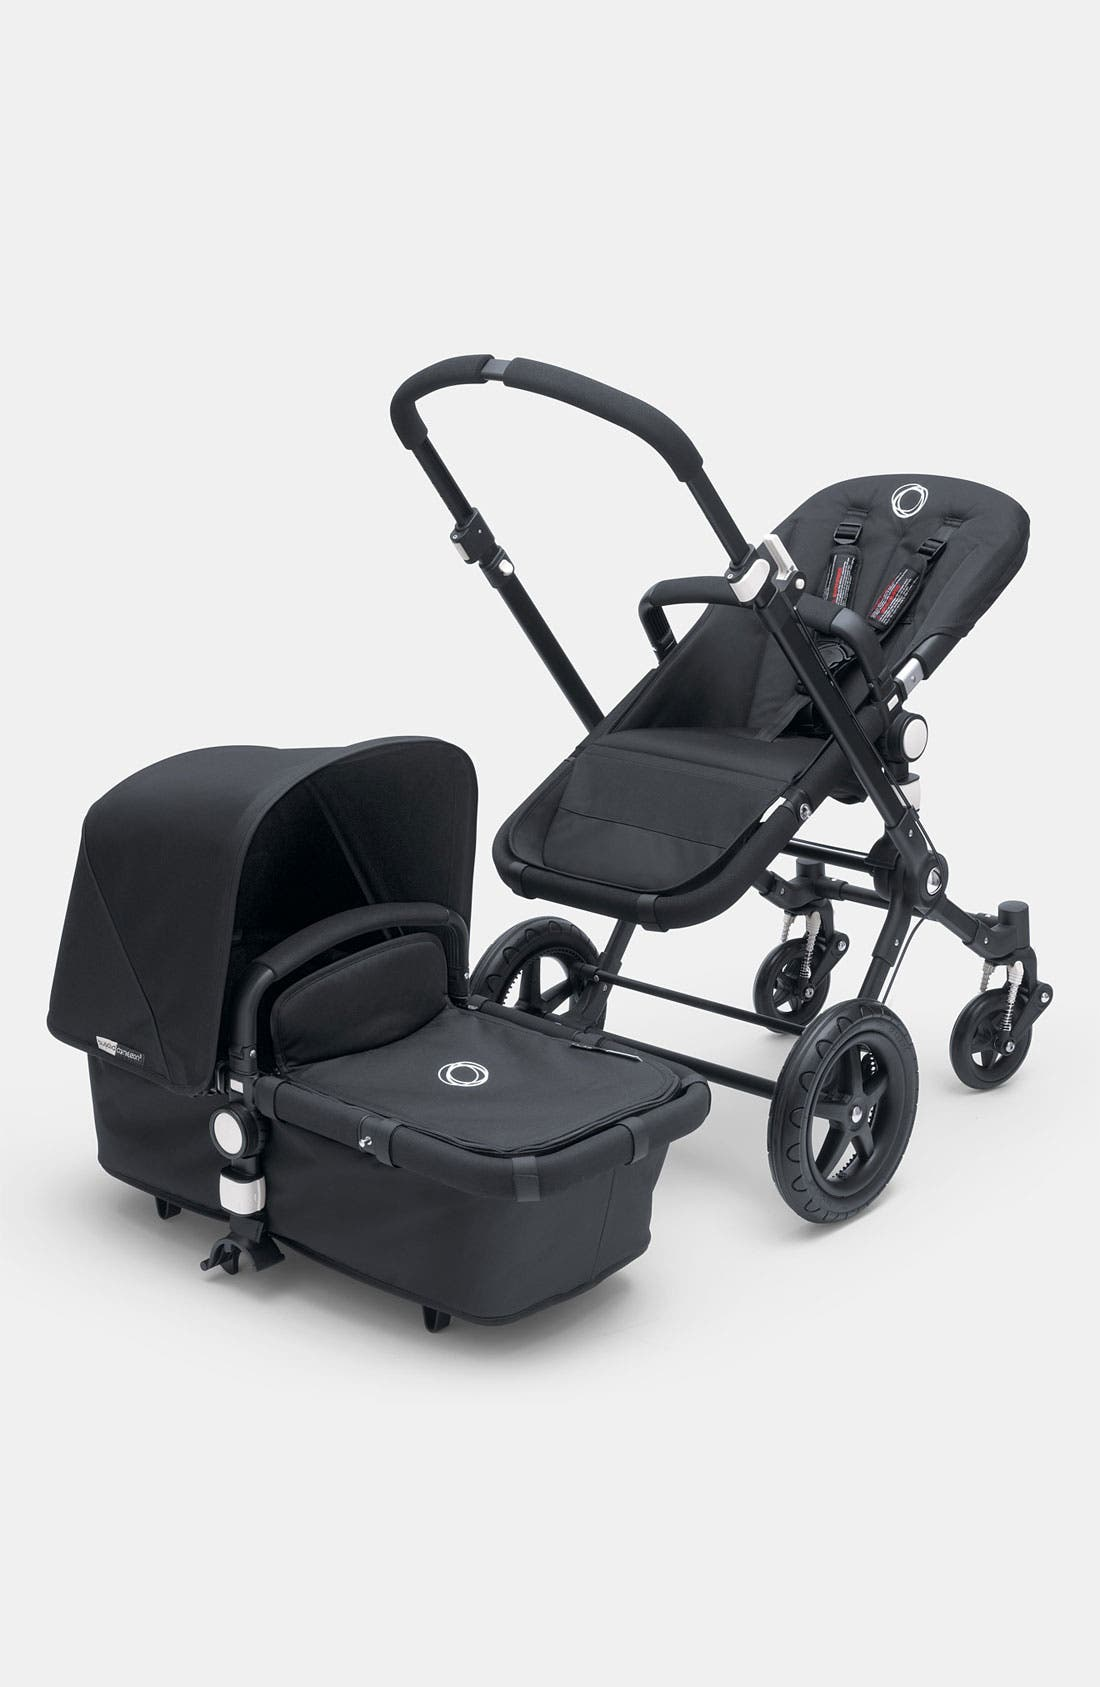 Alternate Image 1 Selected - Bugaboo 'Cameleon³' Stroller - All Black Frame with Fabric Set (Special Edition)